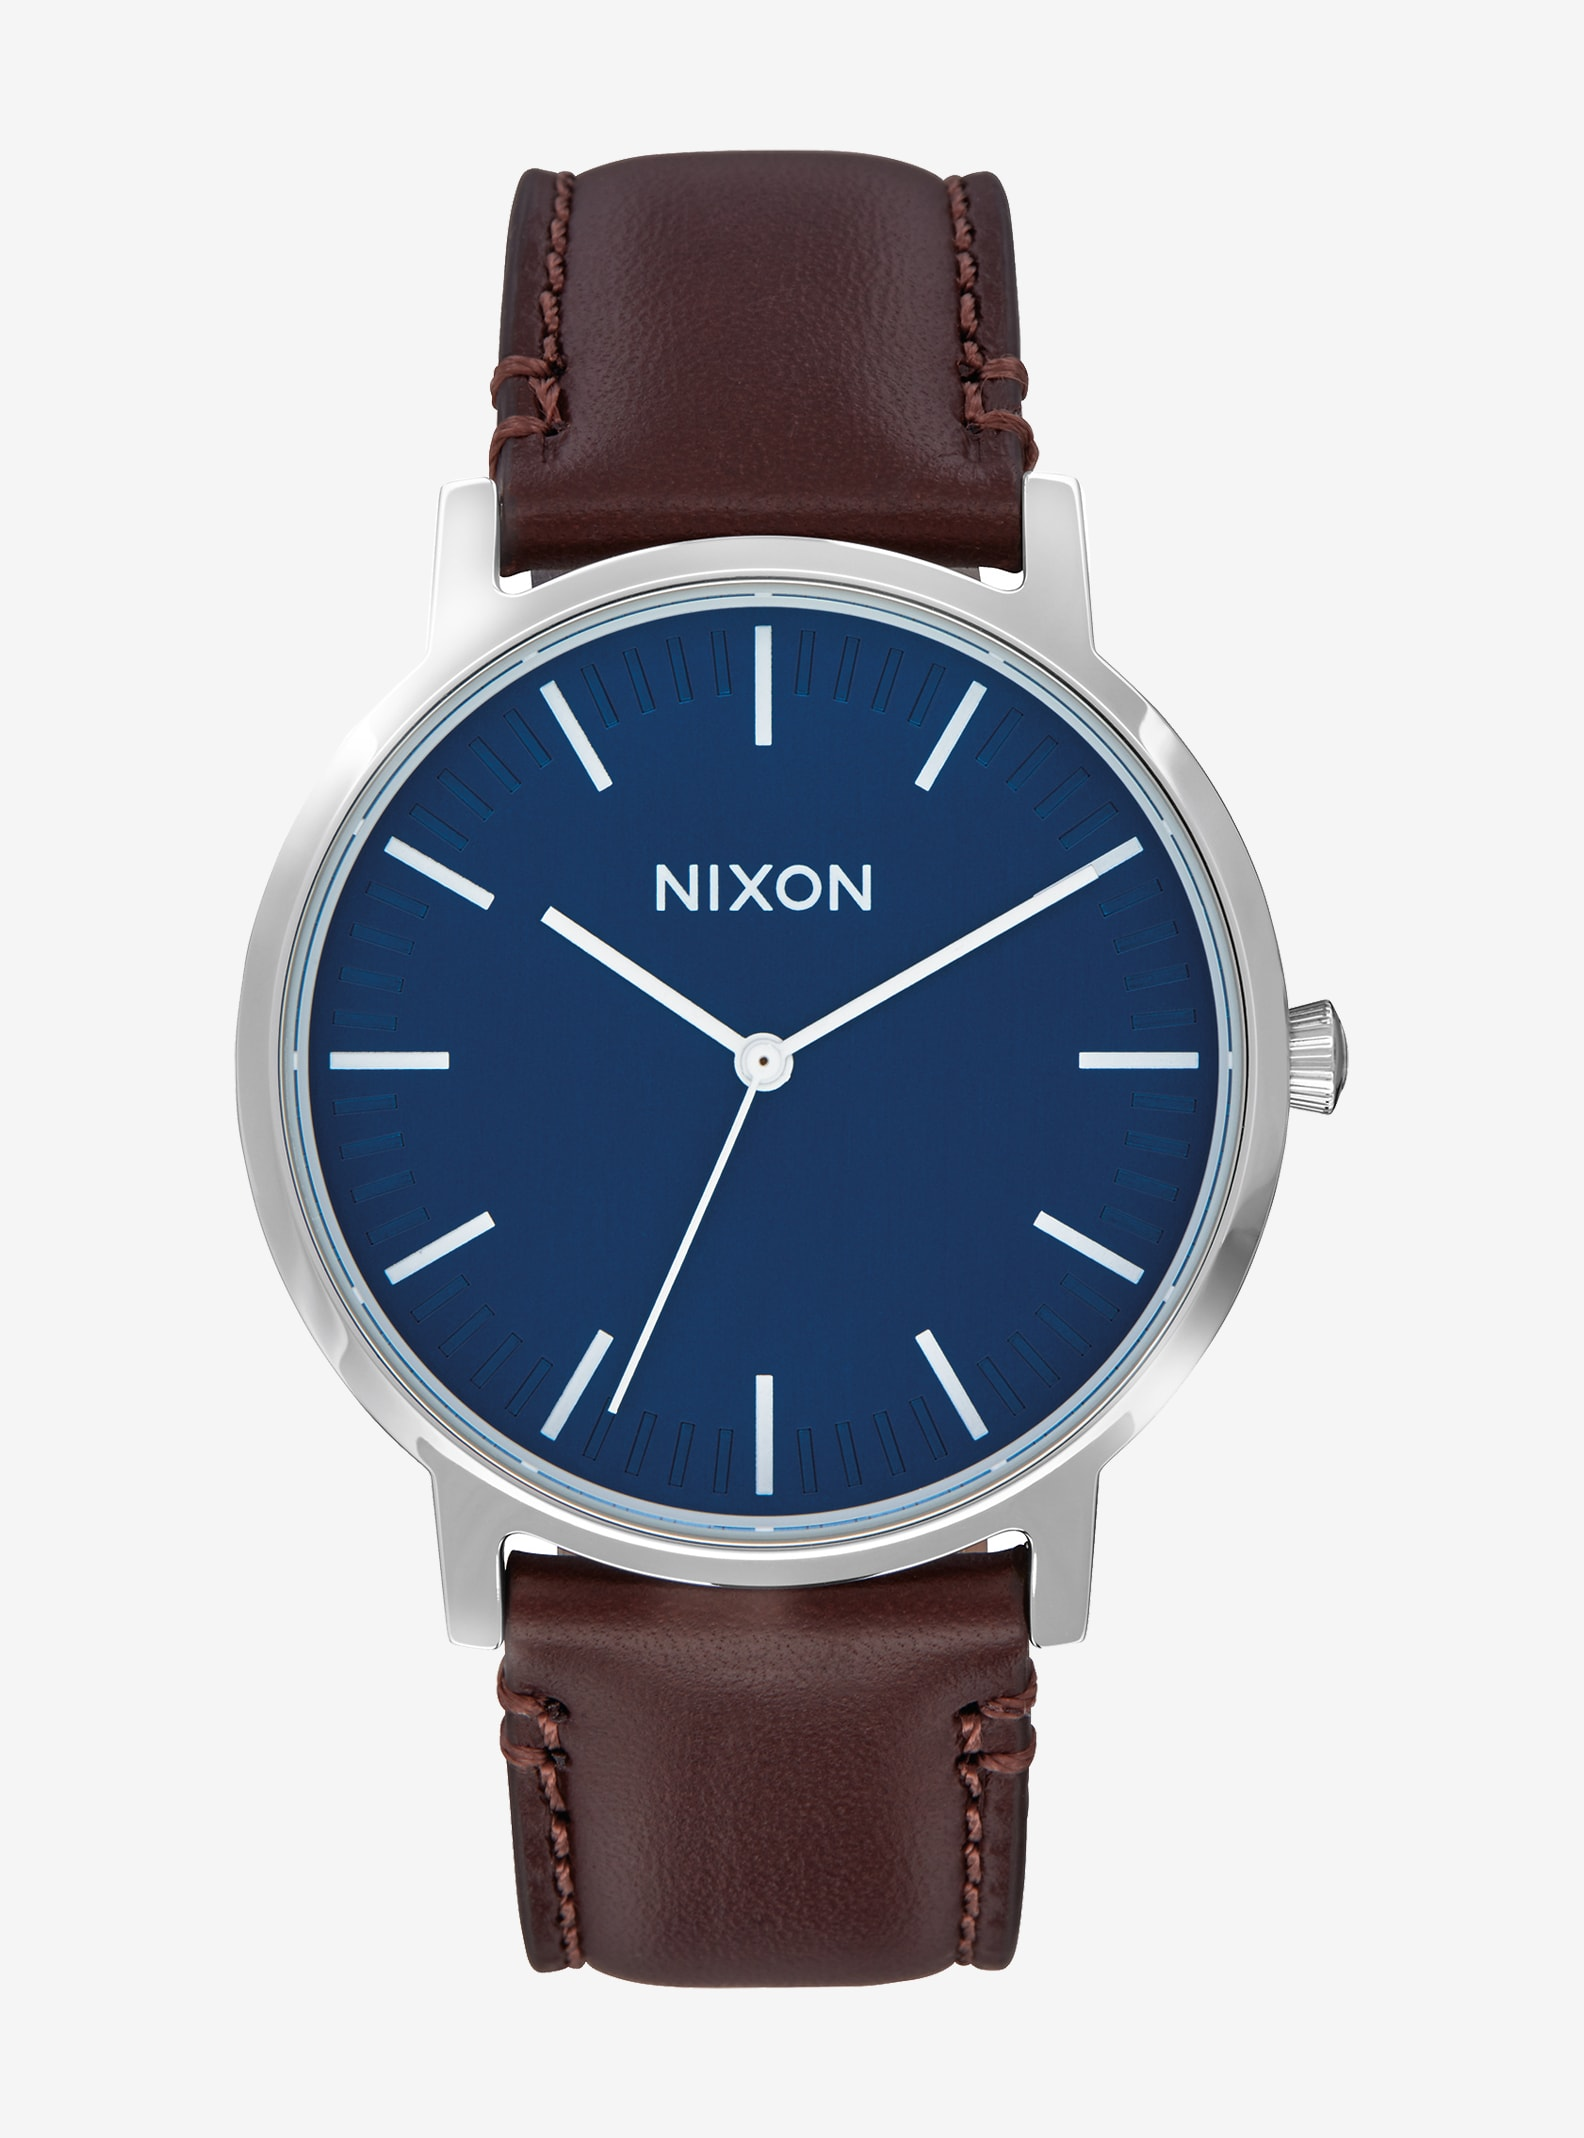 Nixon Porter Leather Watch shown in Navy / Brown